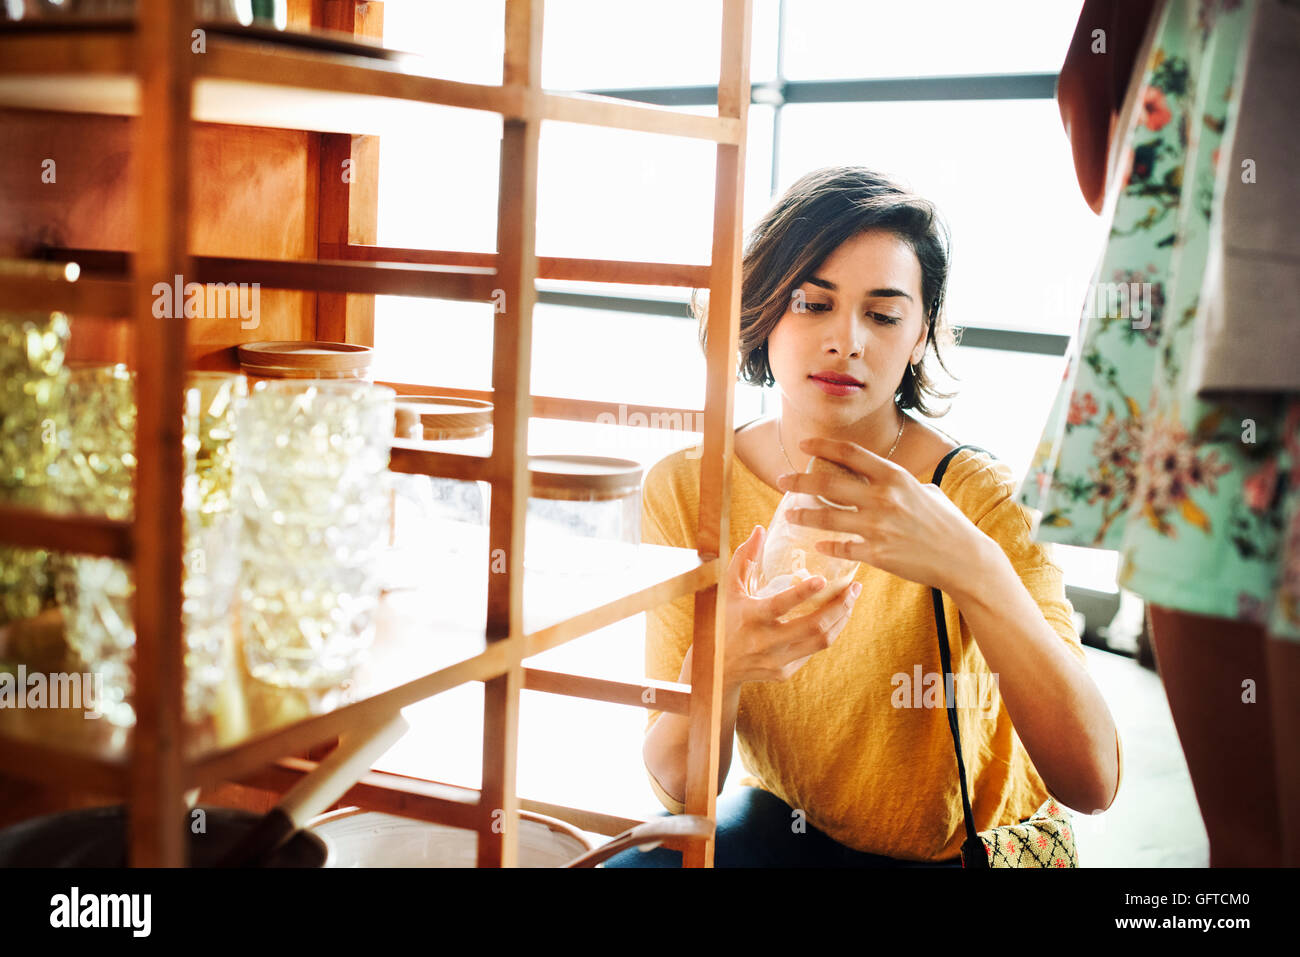 Young woman in a shop looking at a glass - Stock Image